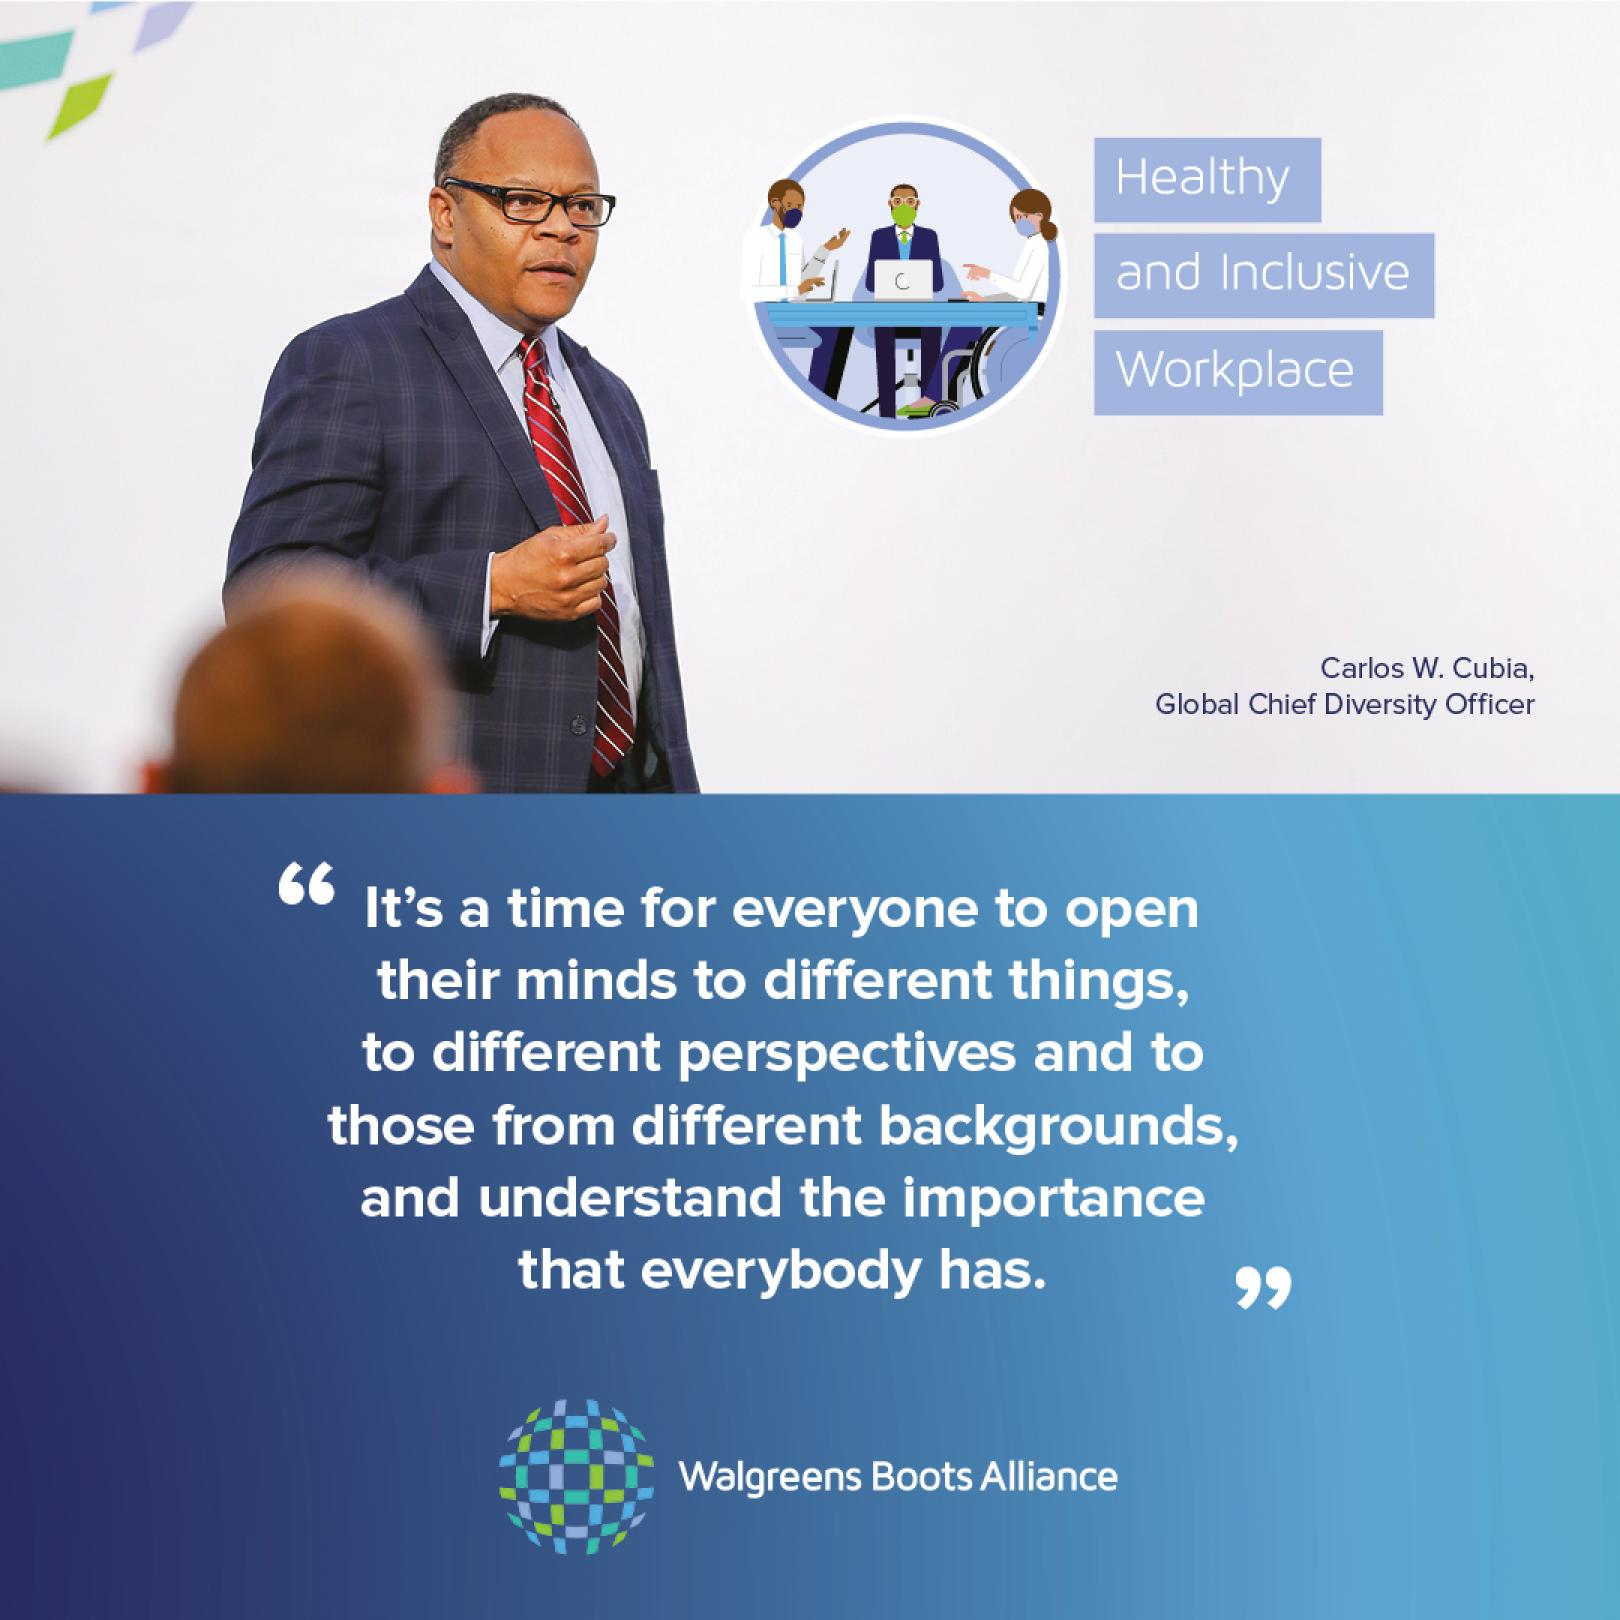 Carlos Cubia, Global Chief Diversity Officer, WBA quote card Instagram